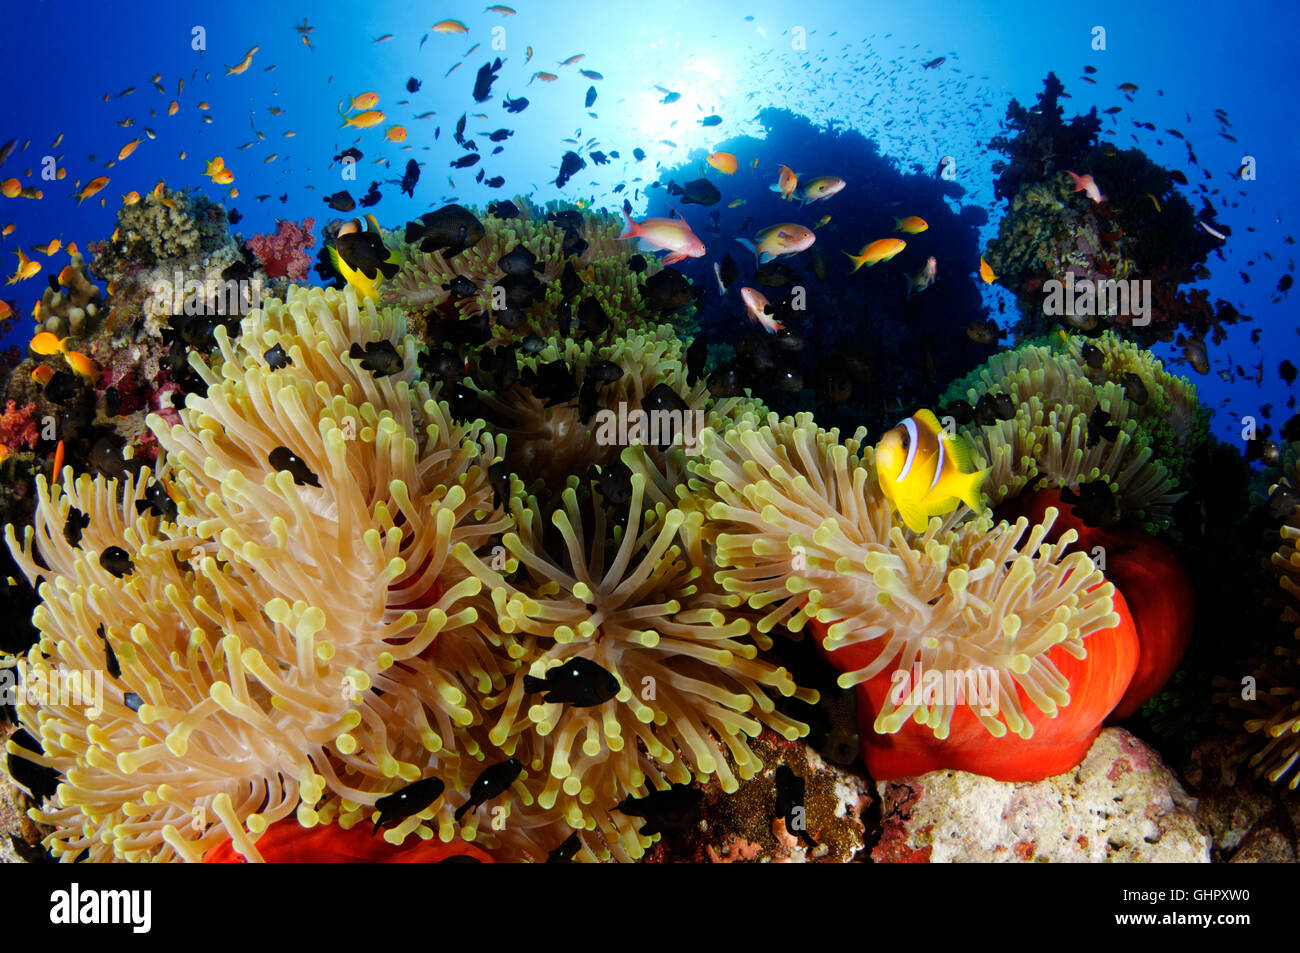 Coral reef with magnificent sea anemone, Red Sea anemonefish, Abu Fandera, Red Sea, Egypt Stock Photo